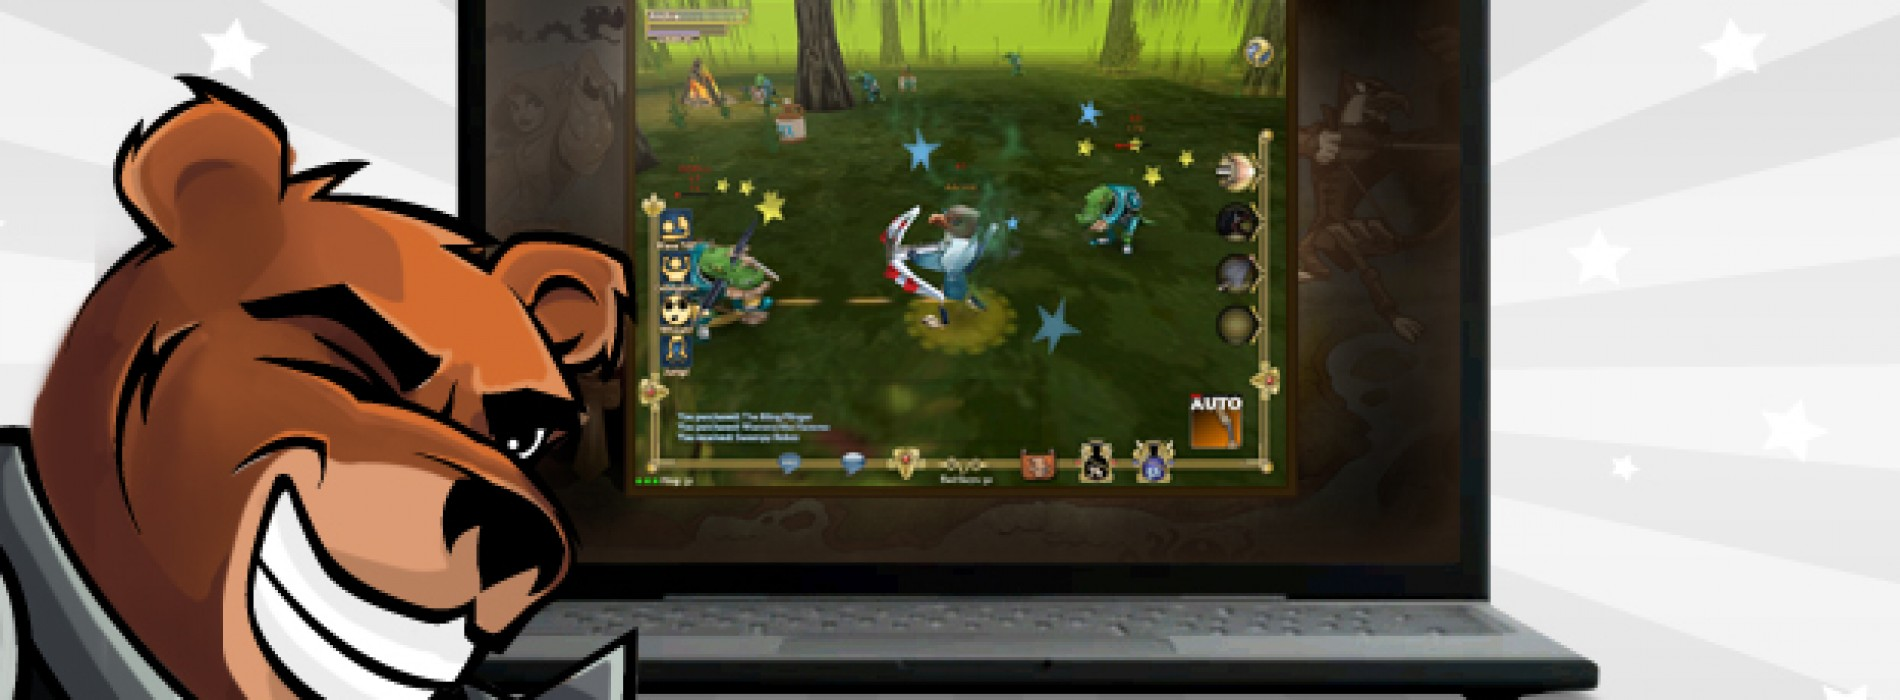 Spacetime Studios celebrates the arrival of their popular MMOs to the Chrome Web Store by giving away 3 Chromebooks